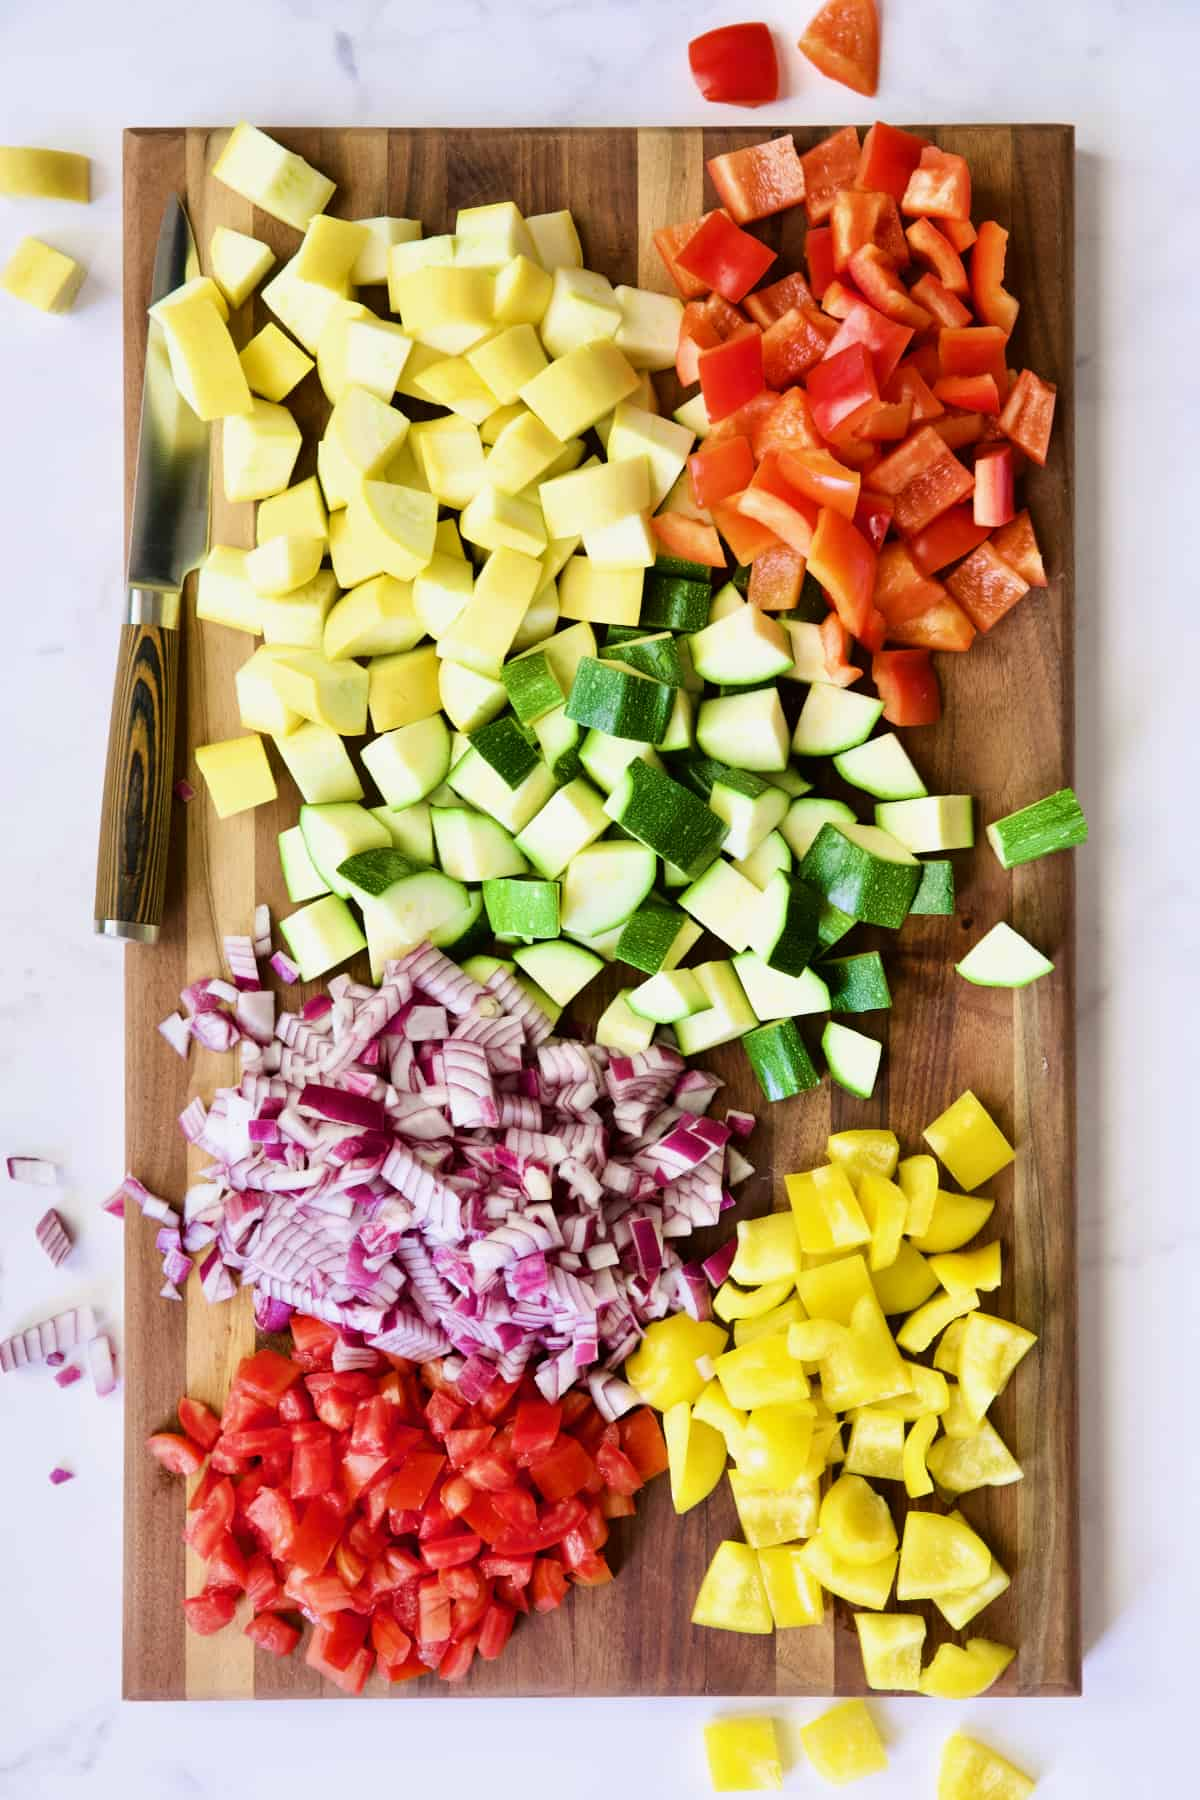 Cut-up vegetables for ratatouille on dark wood cutting board.